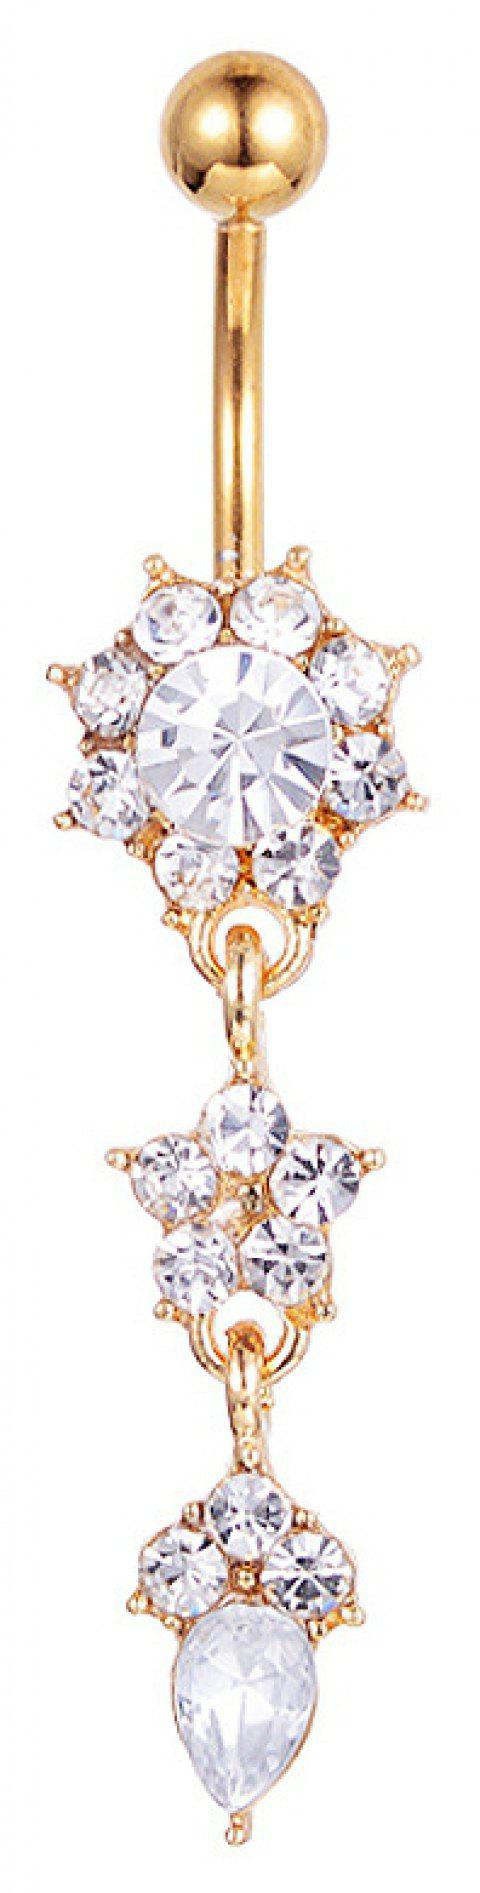 Zircon Fashion pendentif en acier médical Navel Nail Belly Ring - Or